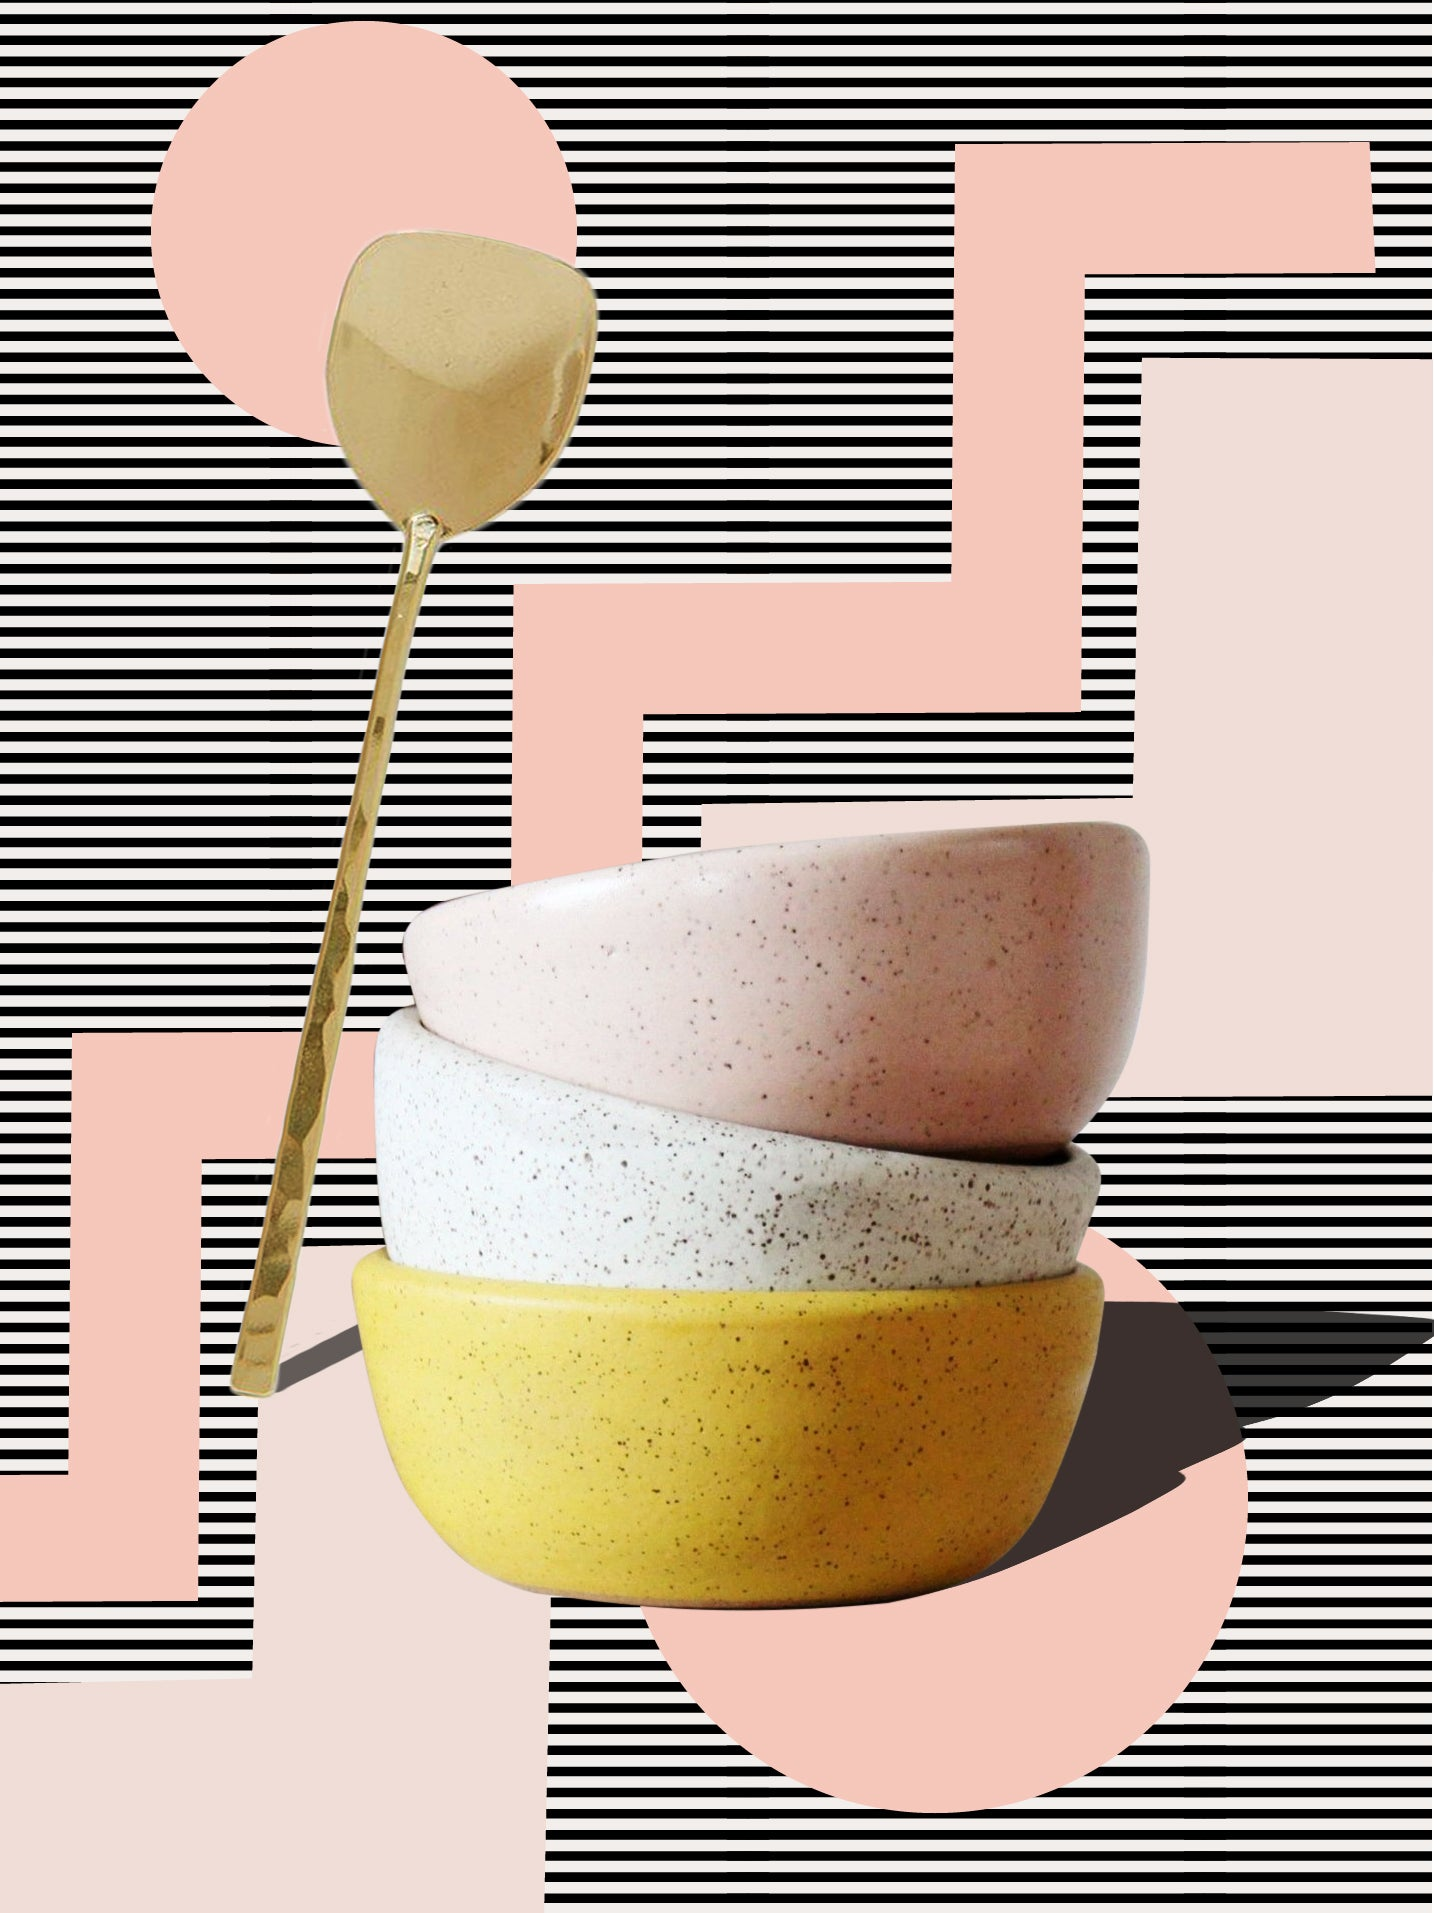 00_FEATURE_ice_cream_bowl_and_spoon